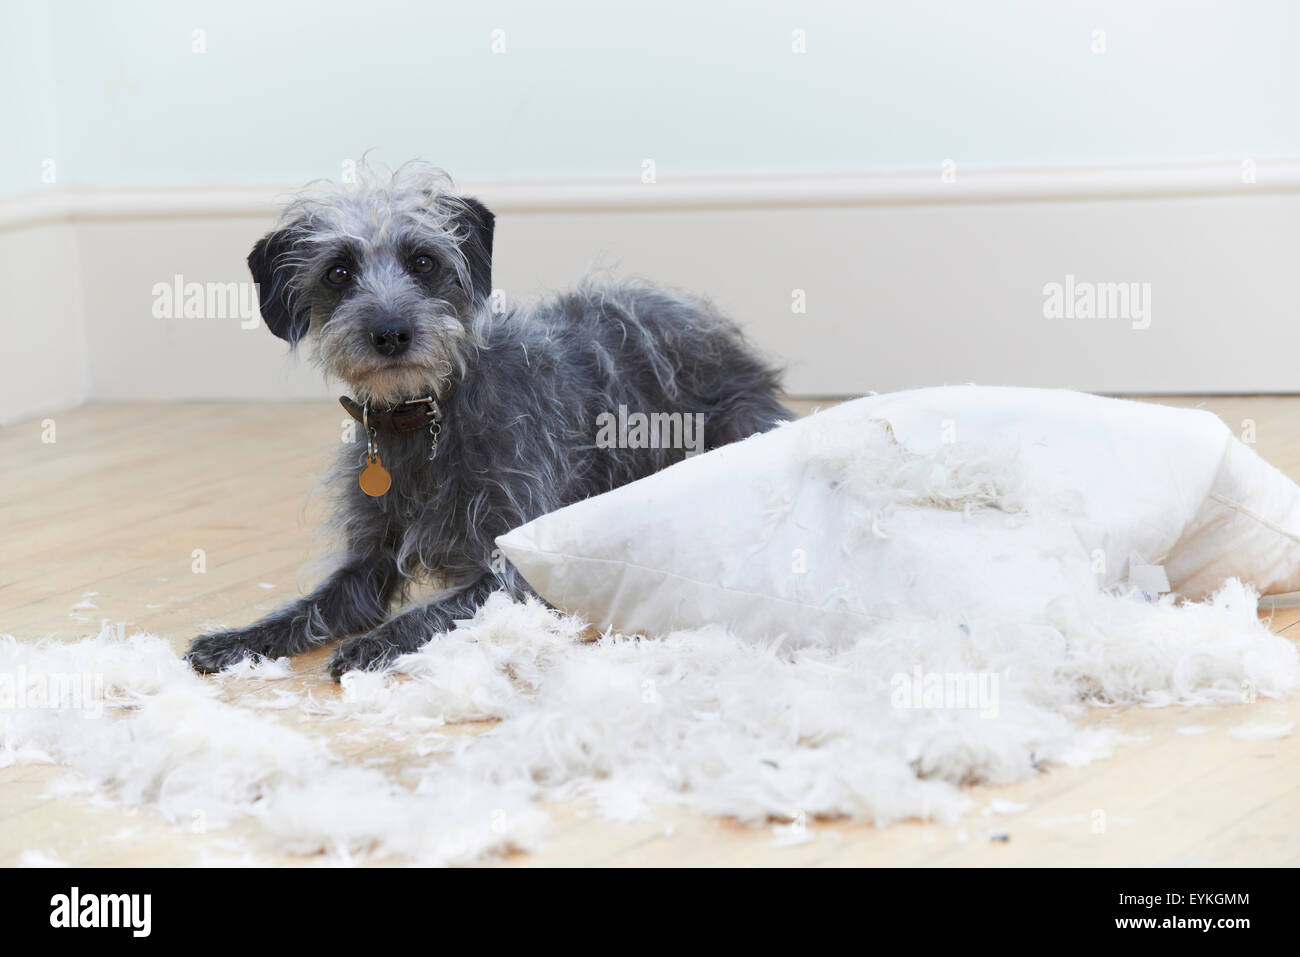 Badly Behaved Dog Ripping Up Cushion At Home - Stock Image